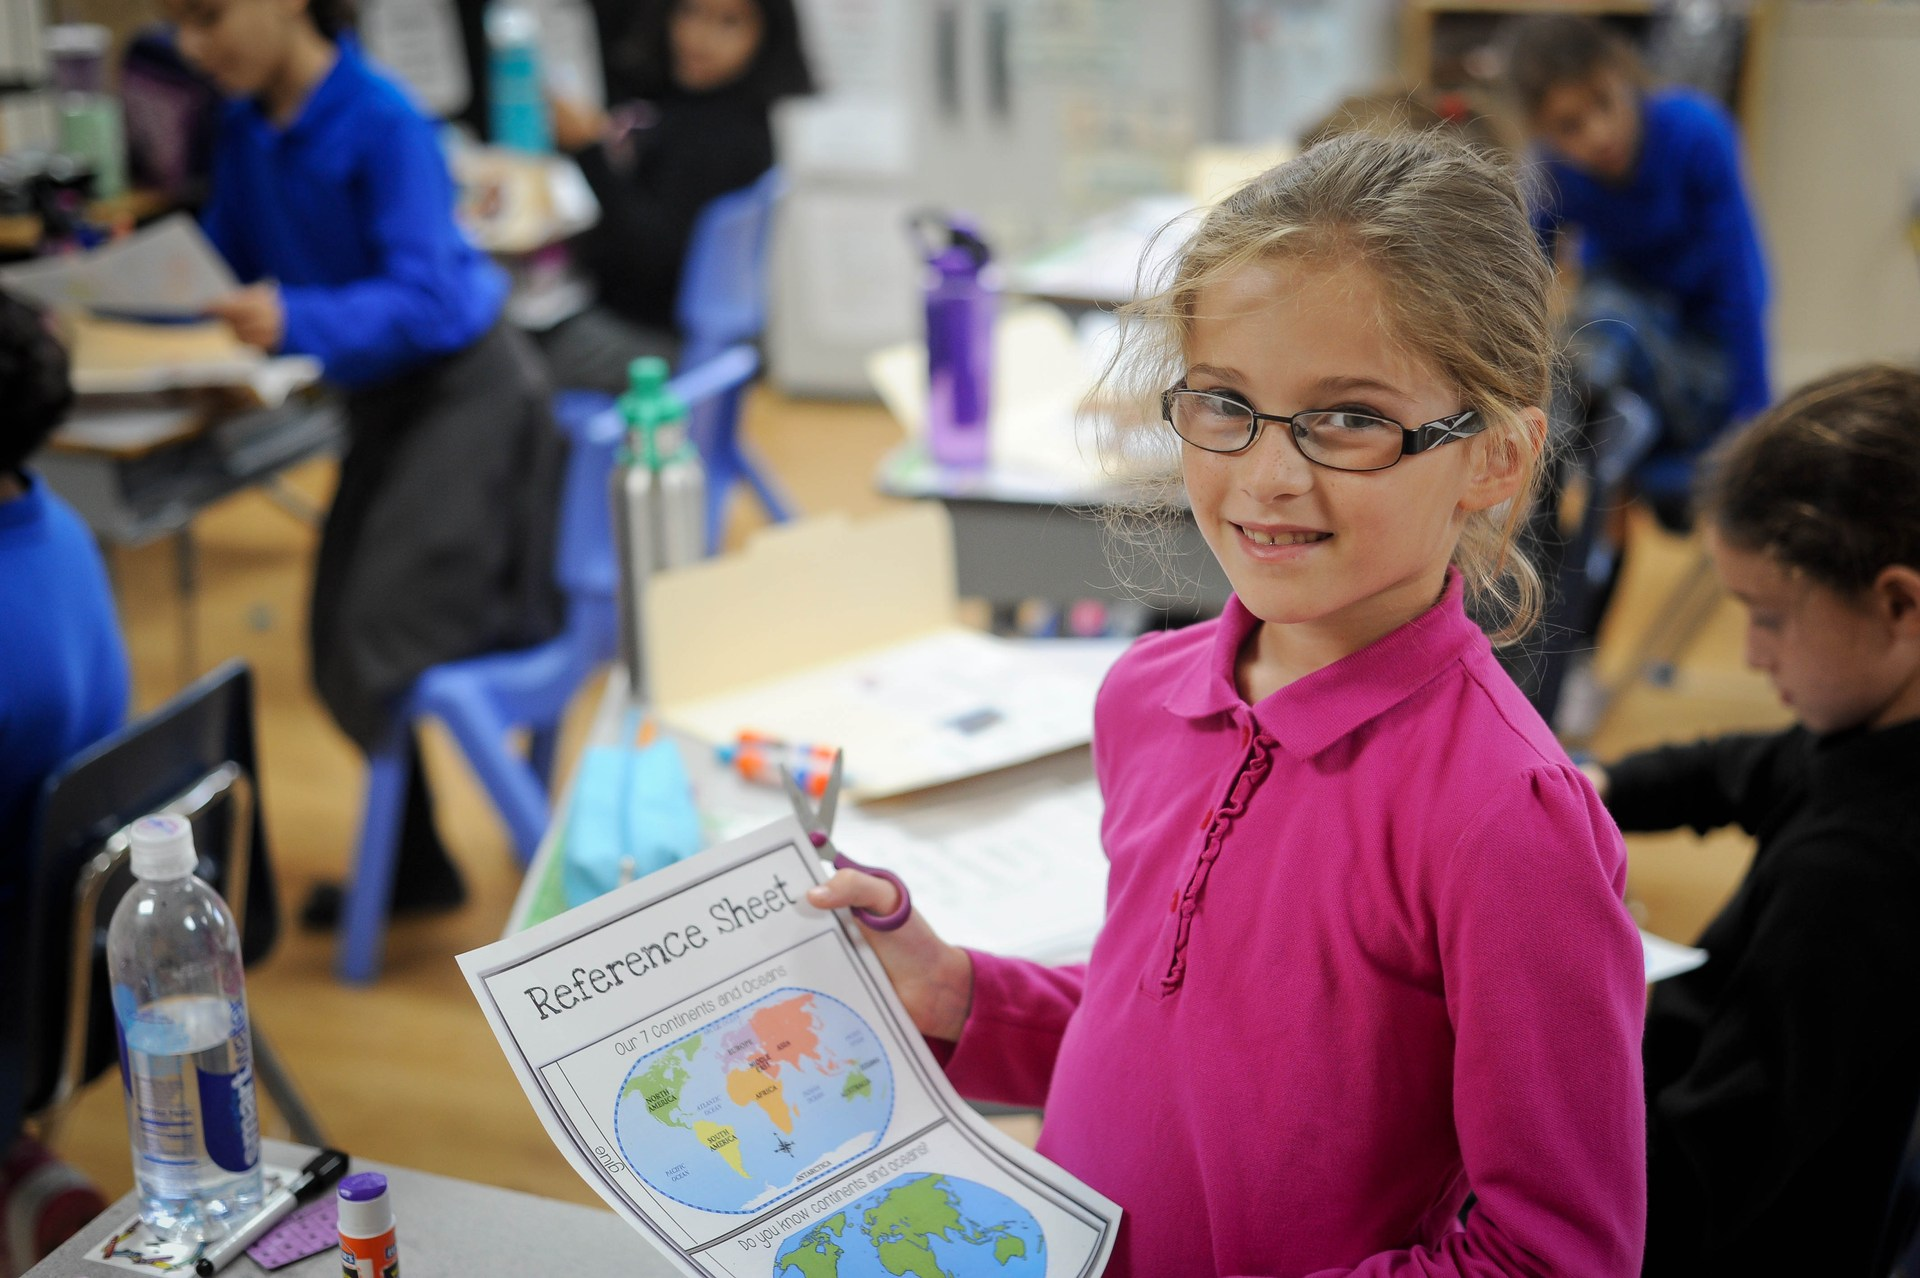 girl holding reference sheet about world map